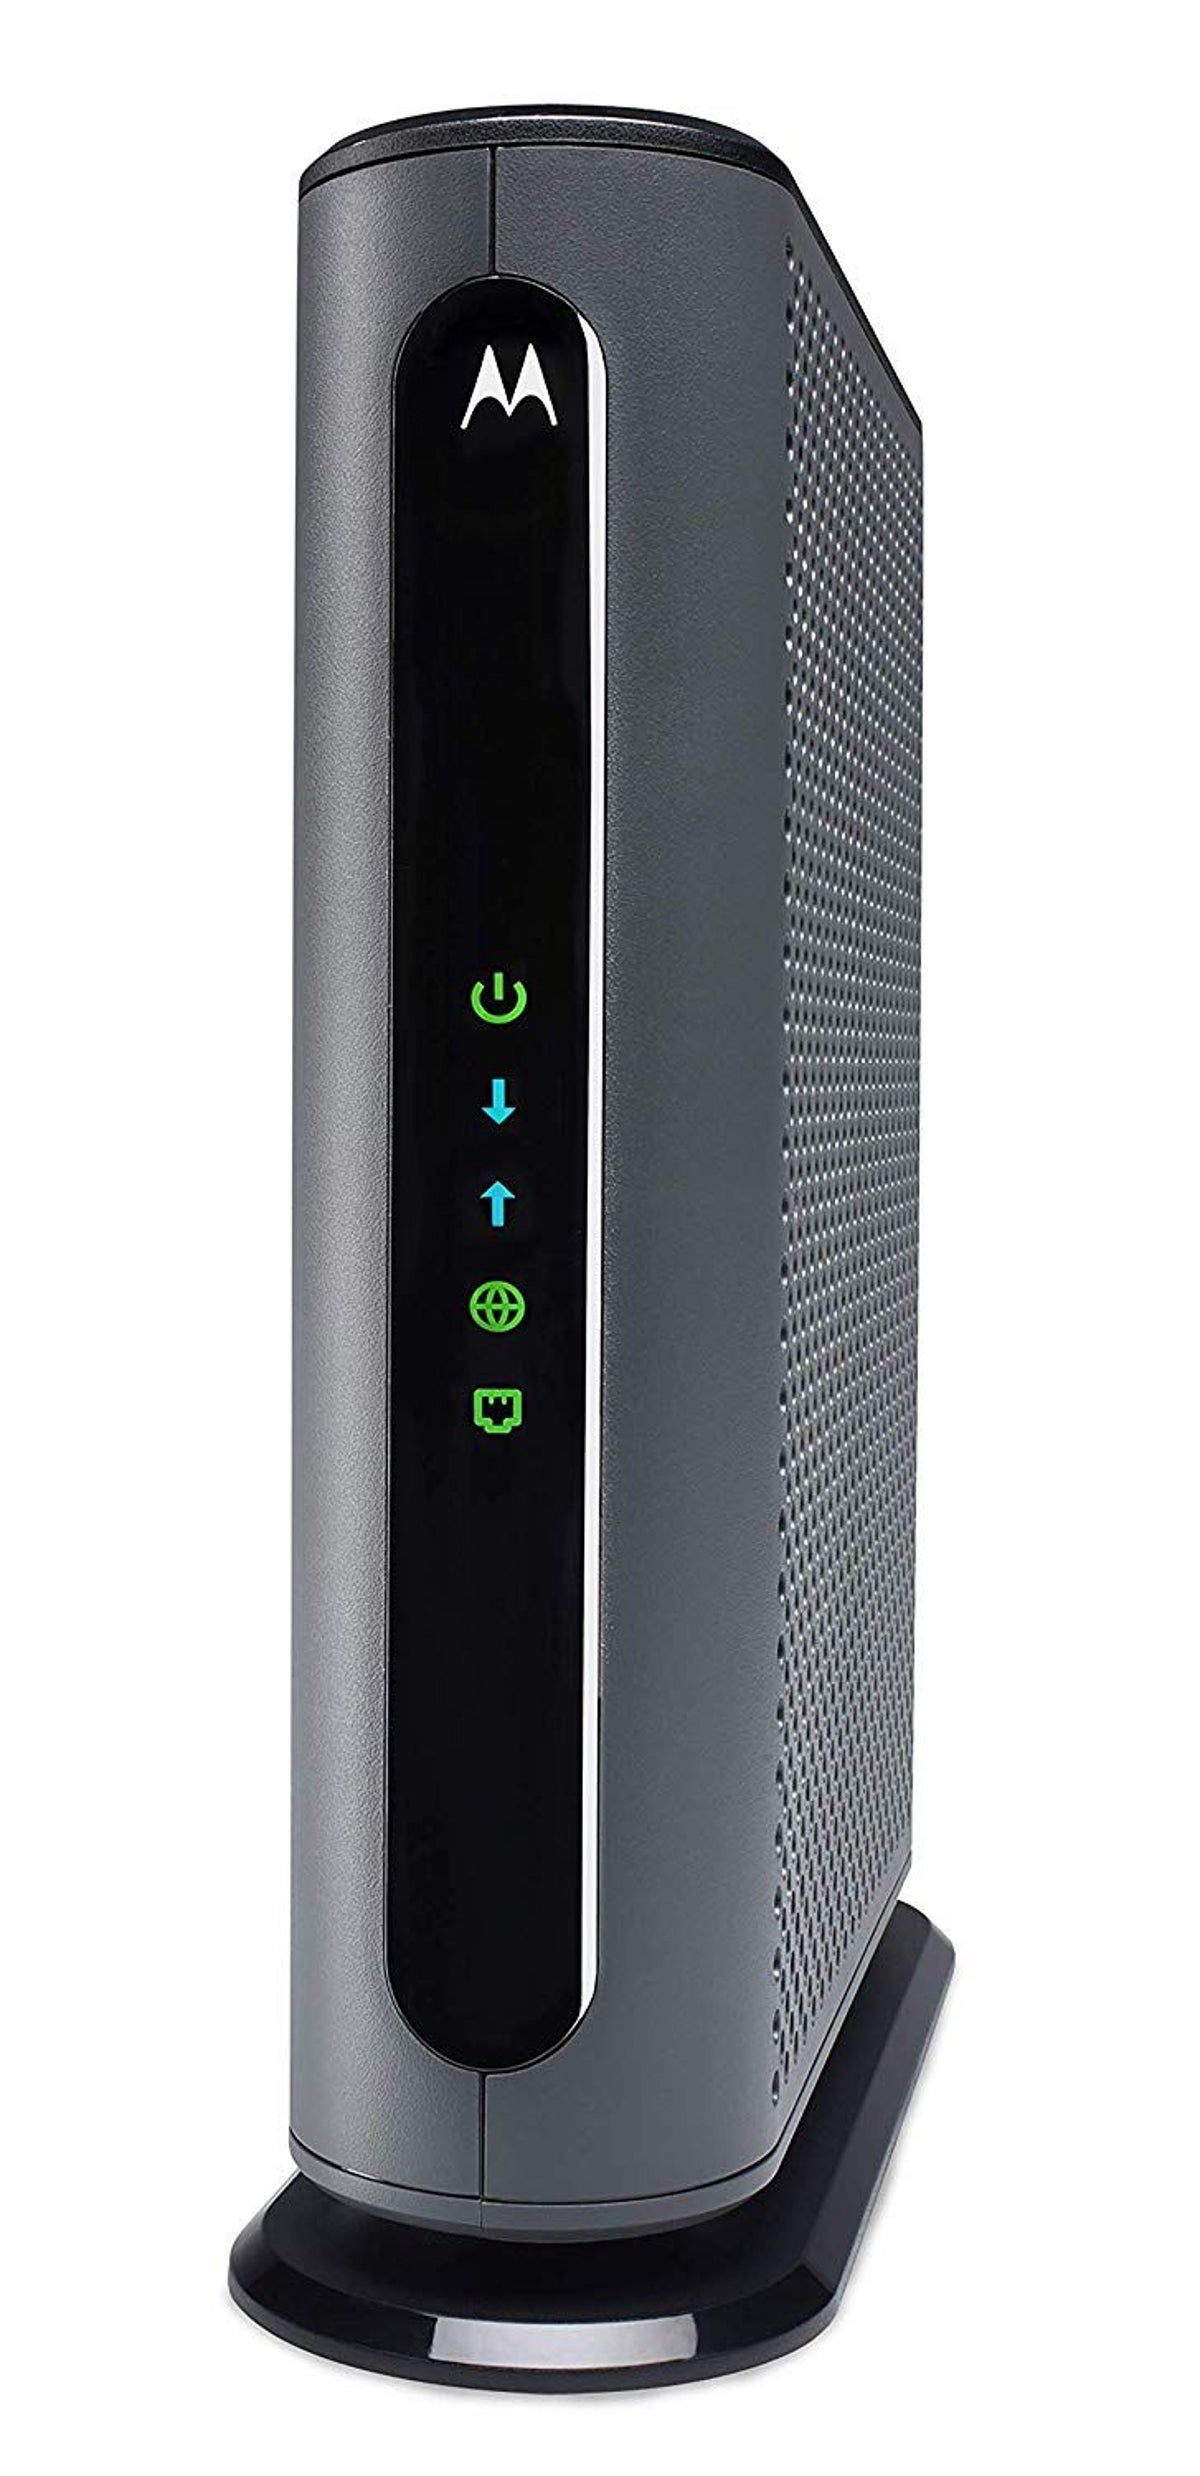 Pin On Best Cable Modem For Xfinity